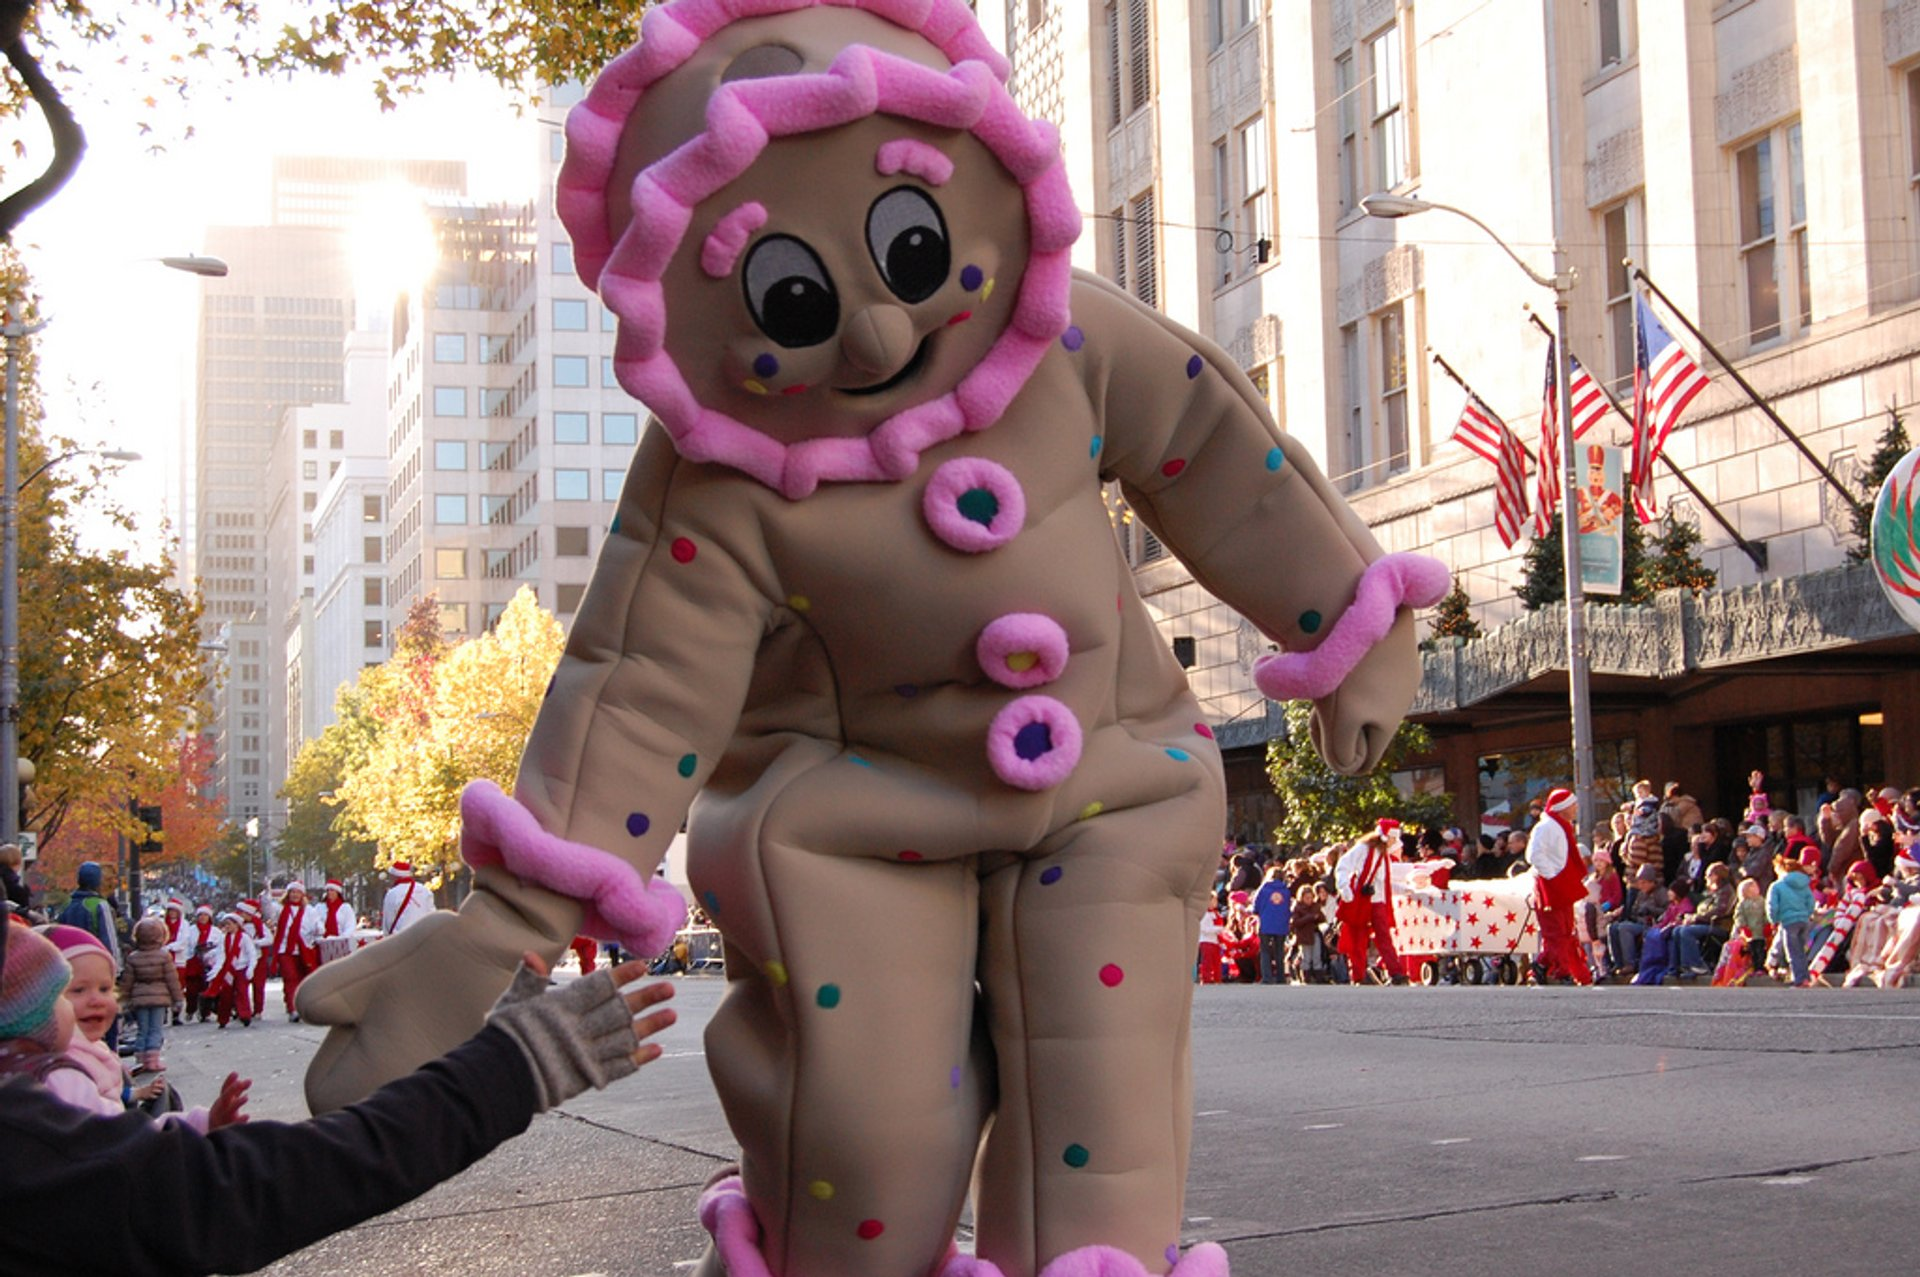 Seattle Macy's Holiday Parade in Seattle - Best Season 2020